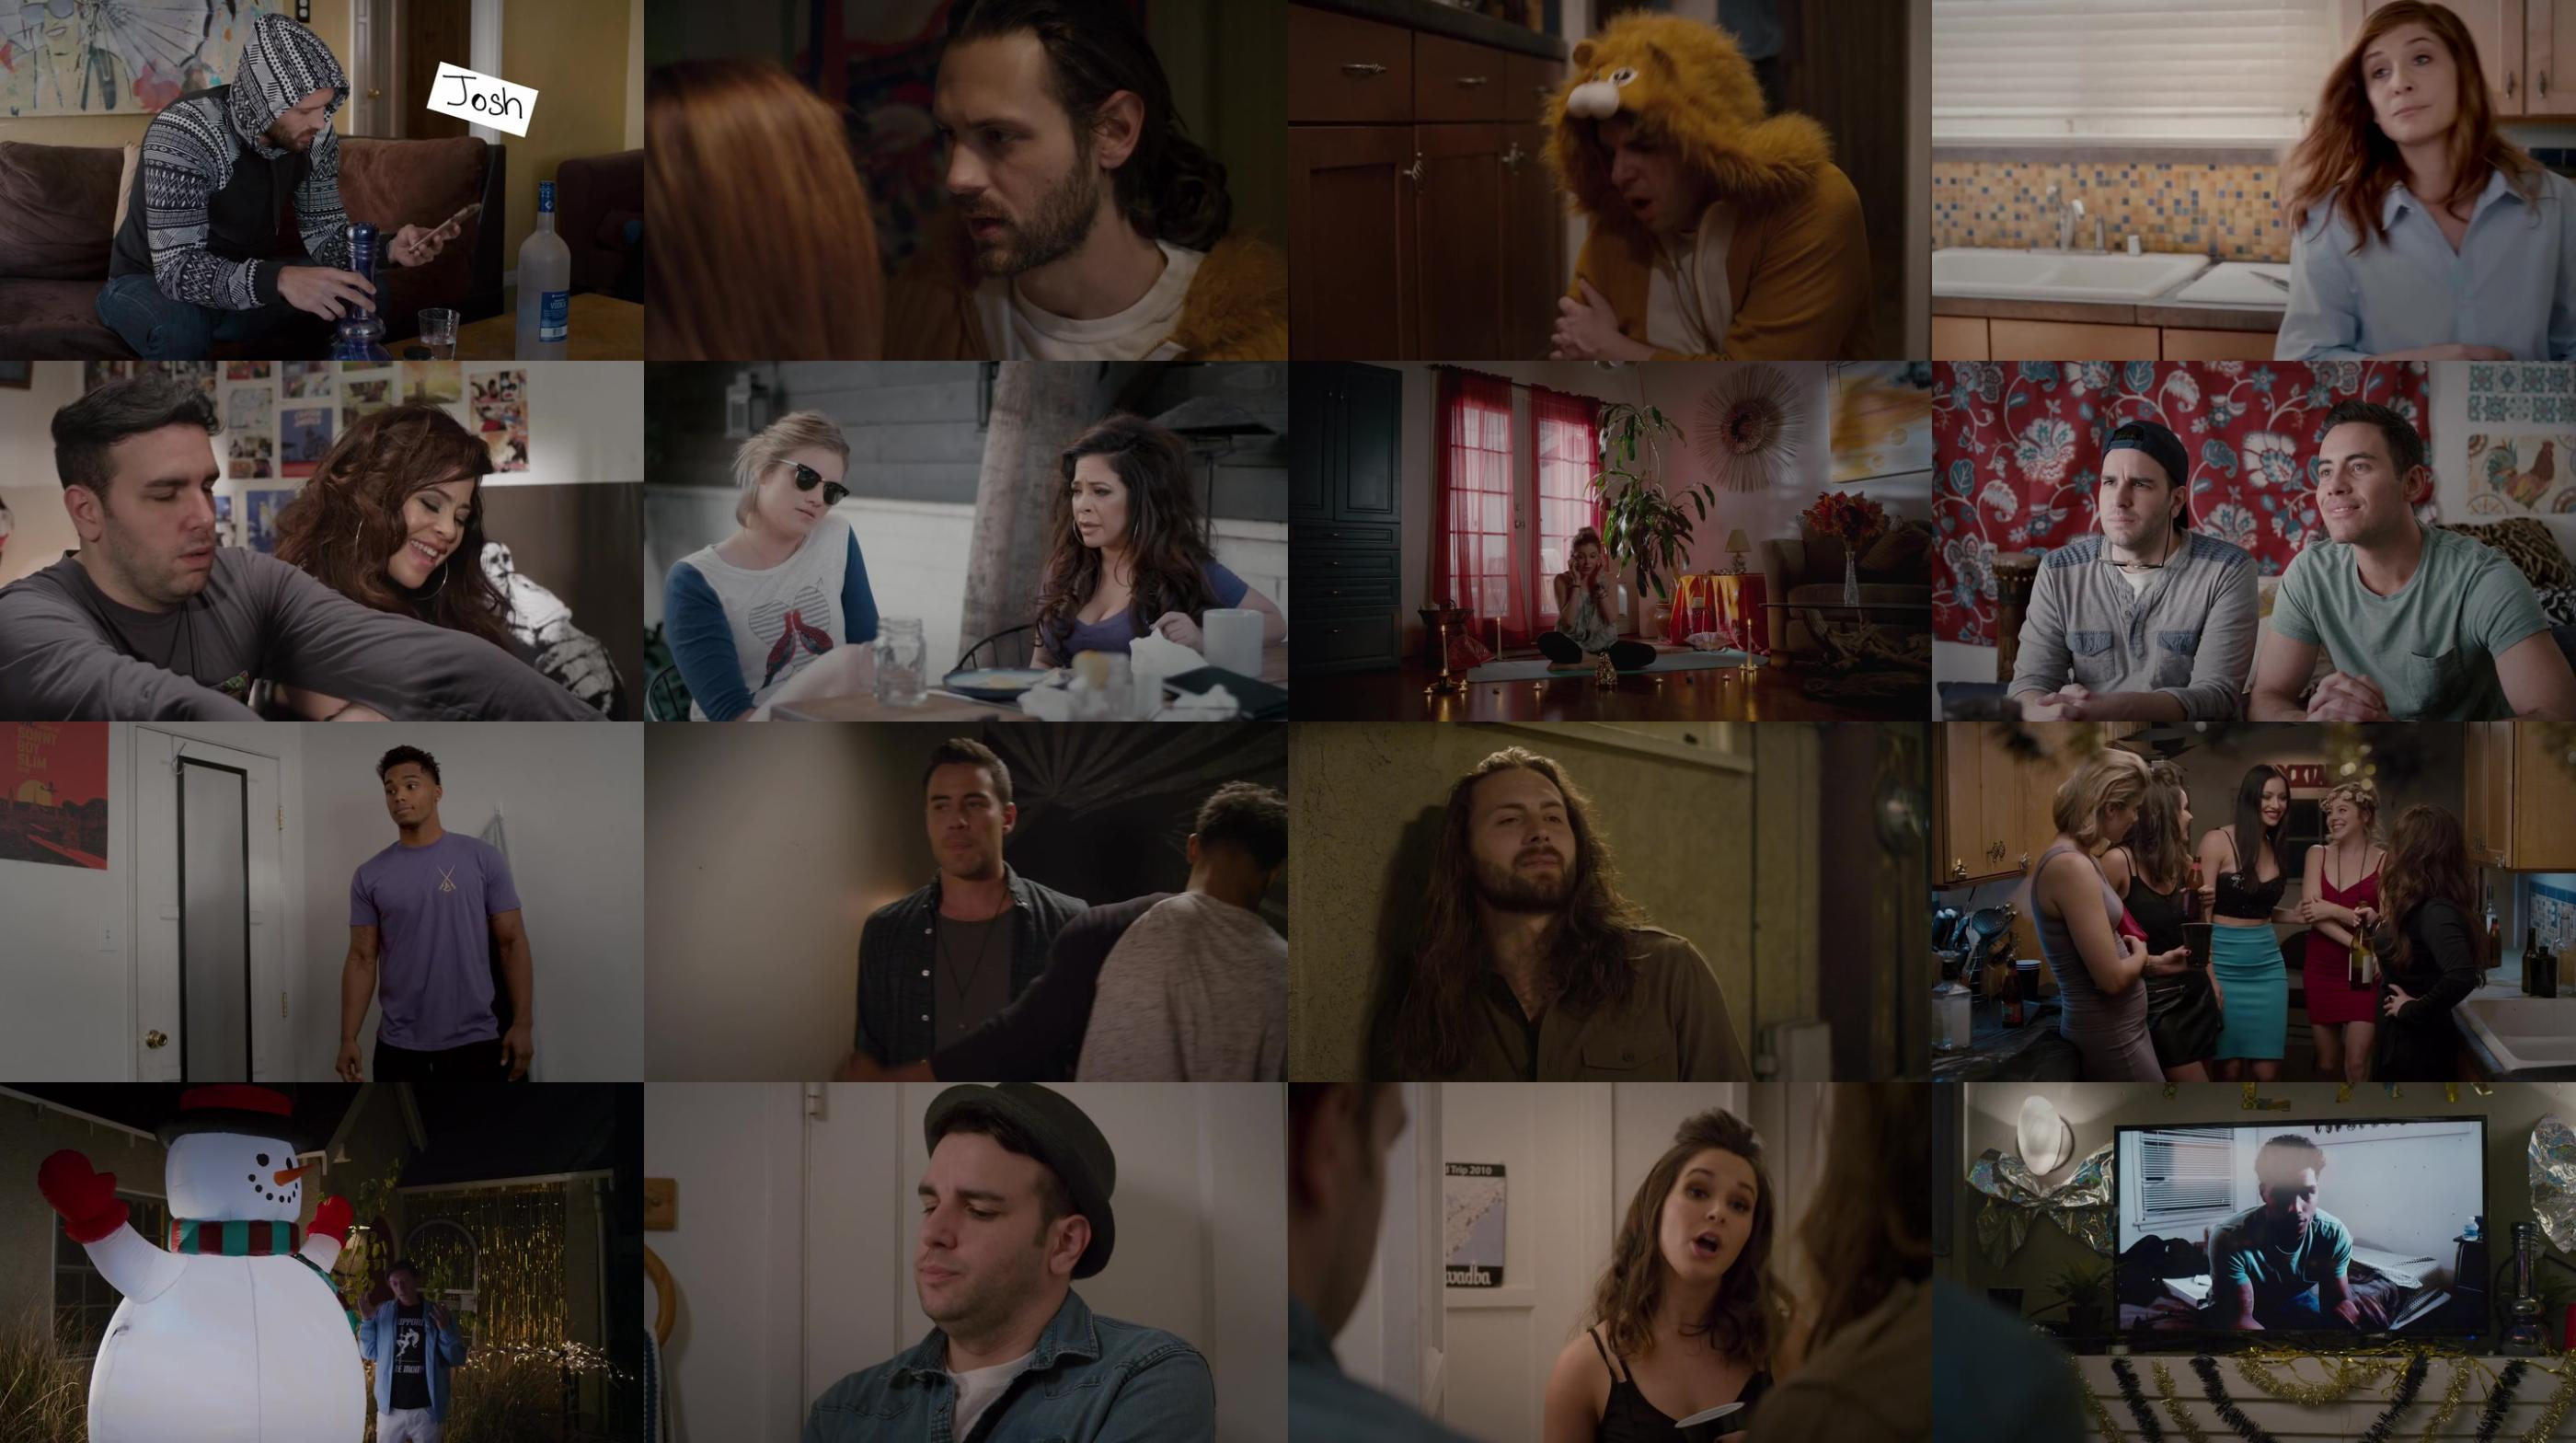 1 2 New Year 2019 HDRip XviD AC3 EVO